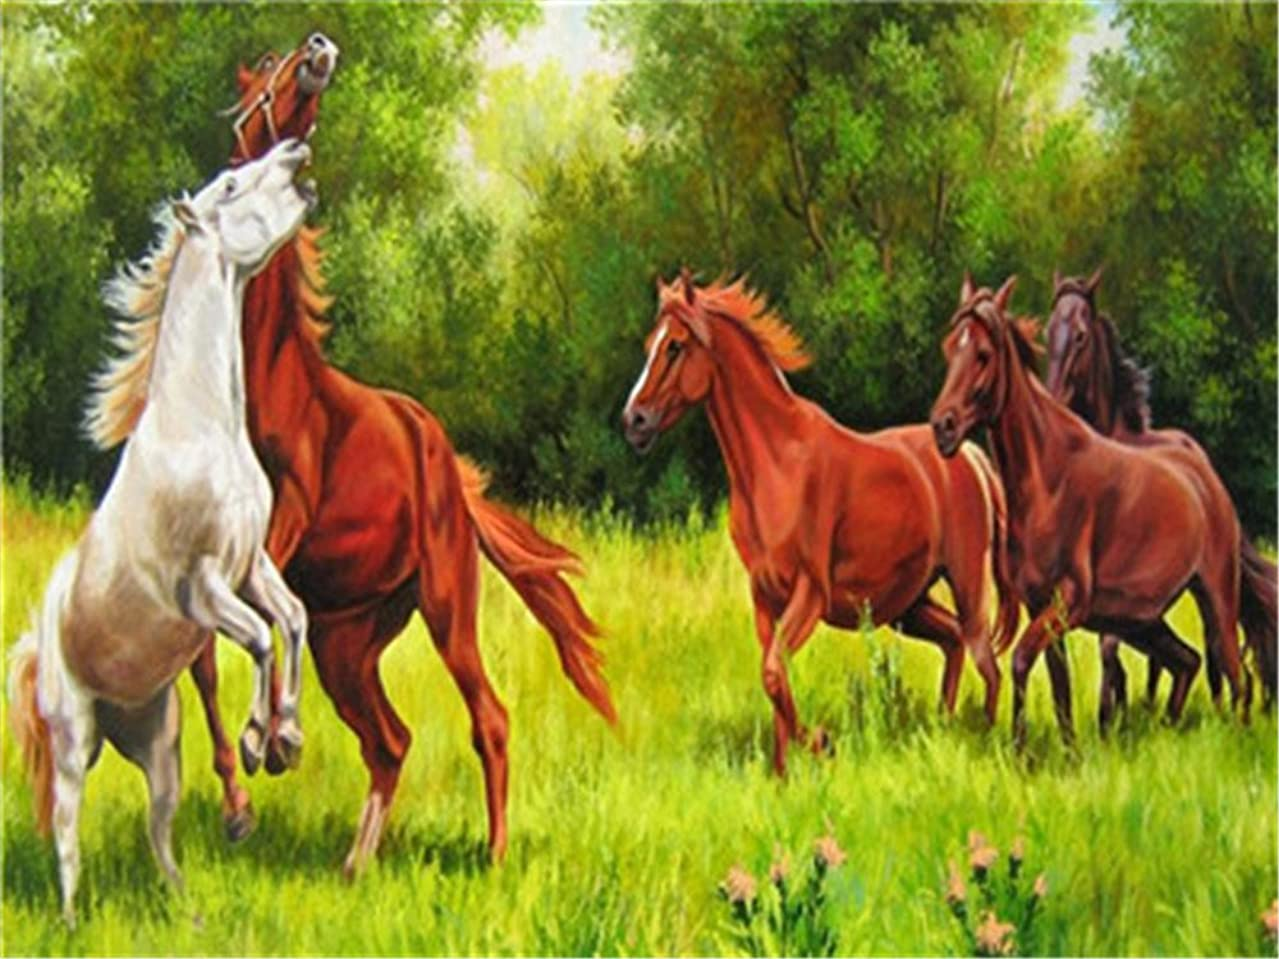 Diy Oil Paint by Number Kit for Adults Beginner 16x20 inch - Wild Horses, Drawing with Brushes Christmas Decor Decorations Gifts (Without Frame)